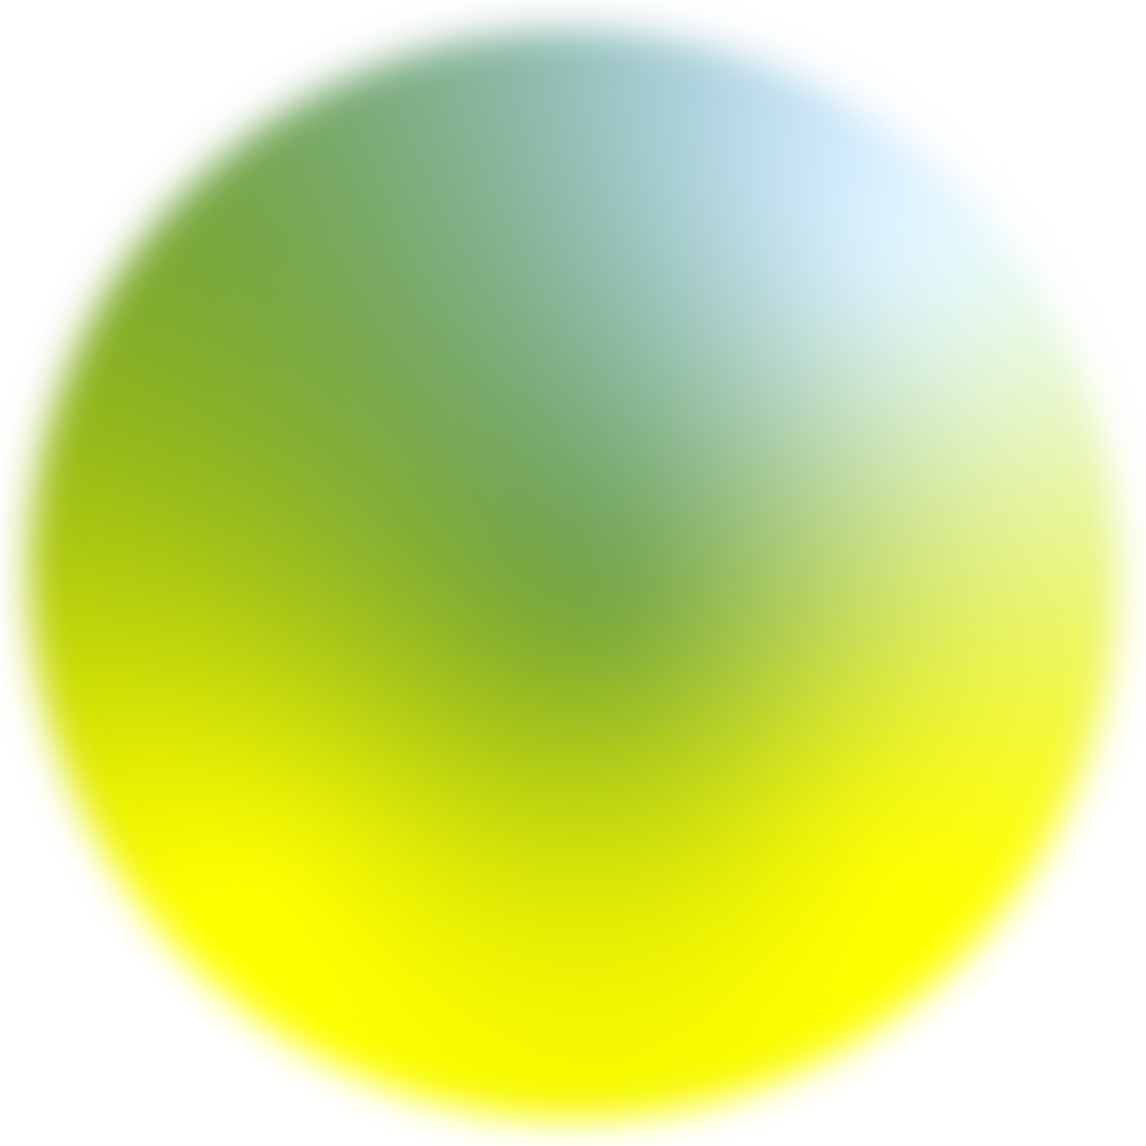 gradient_-cirkel.png (copy)